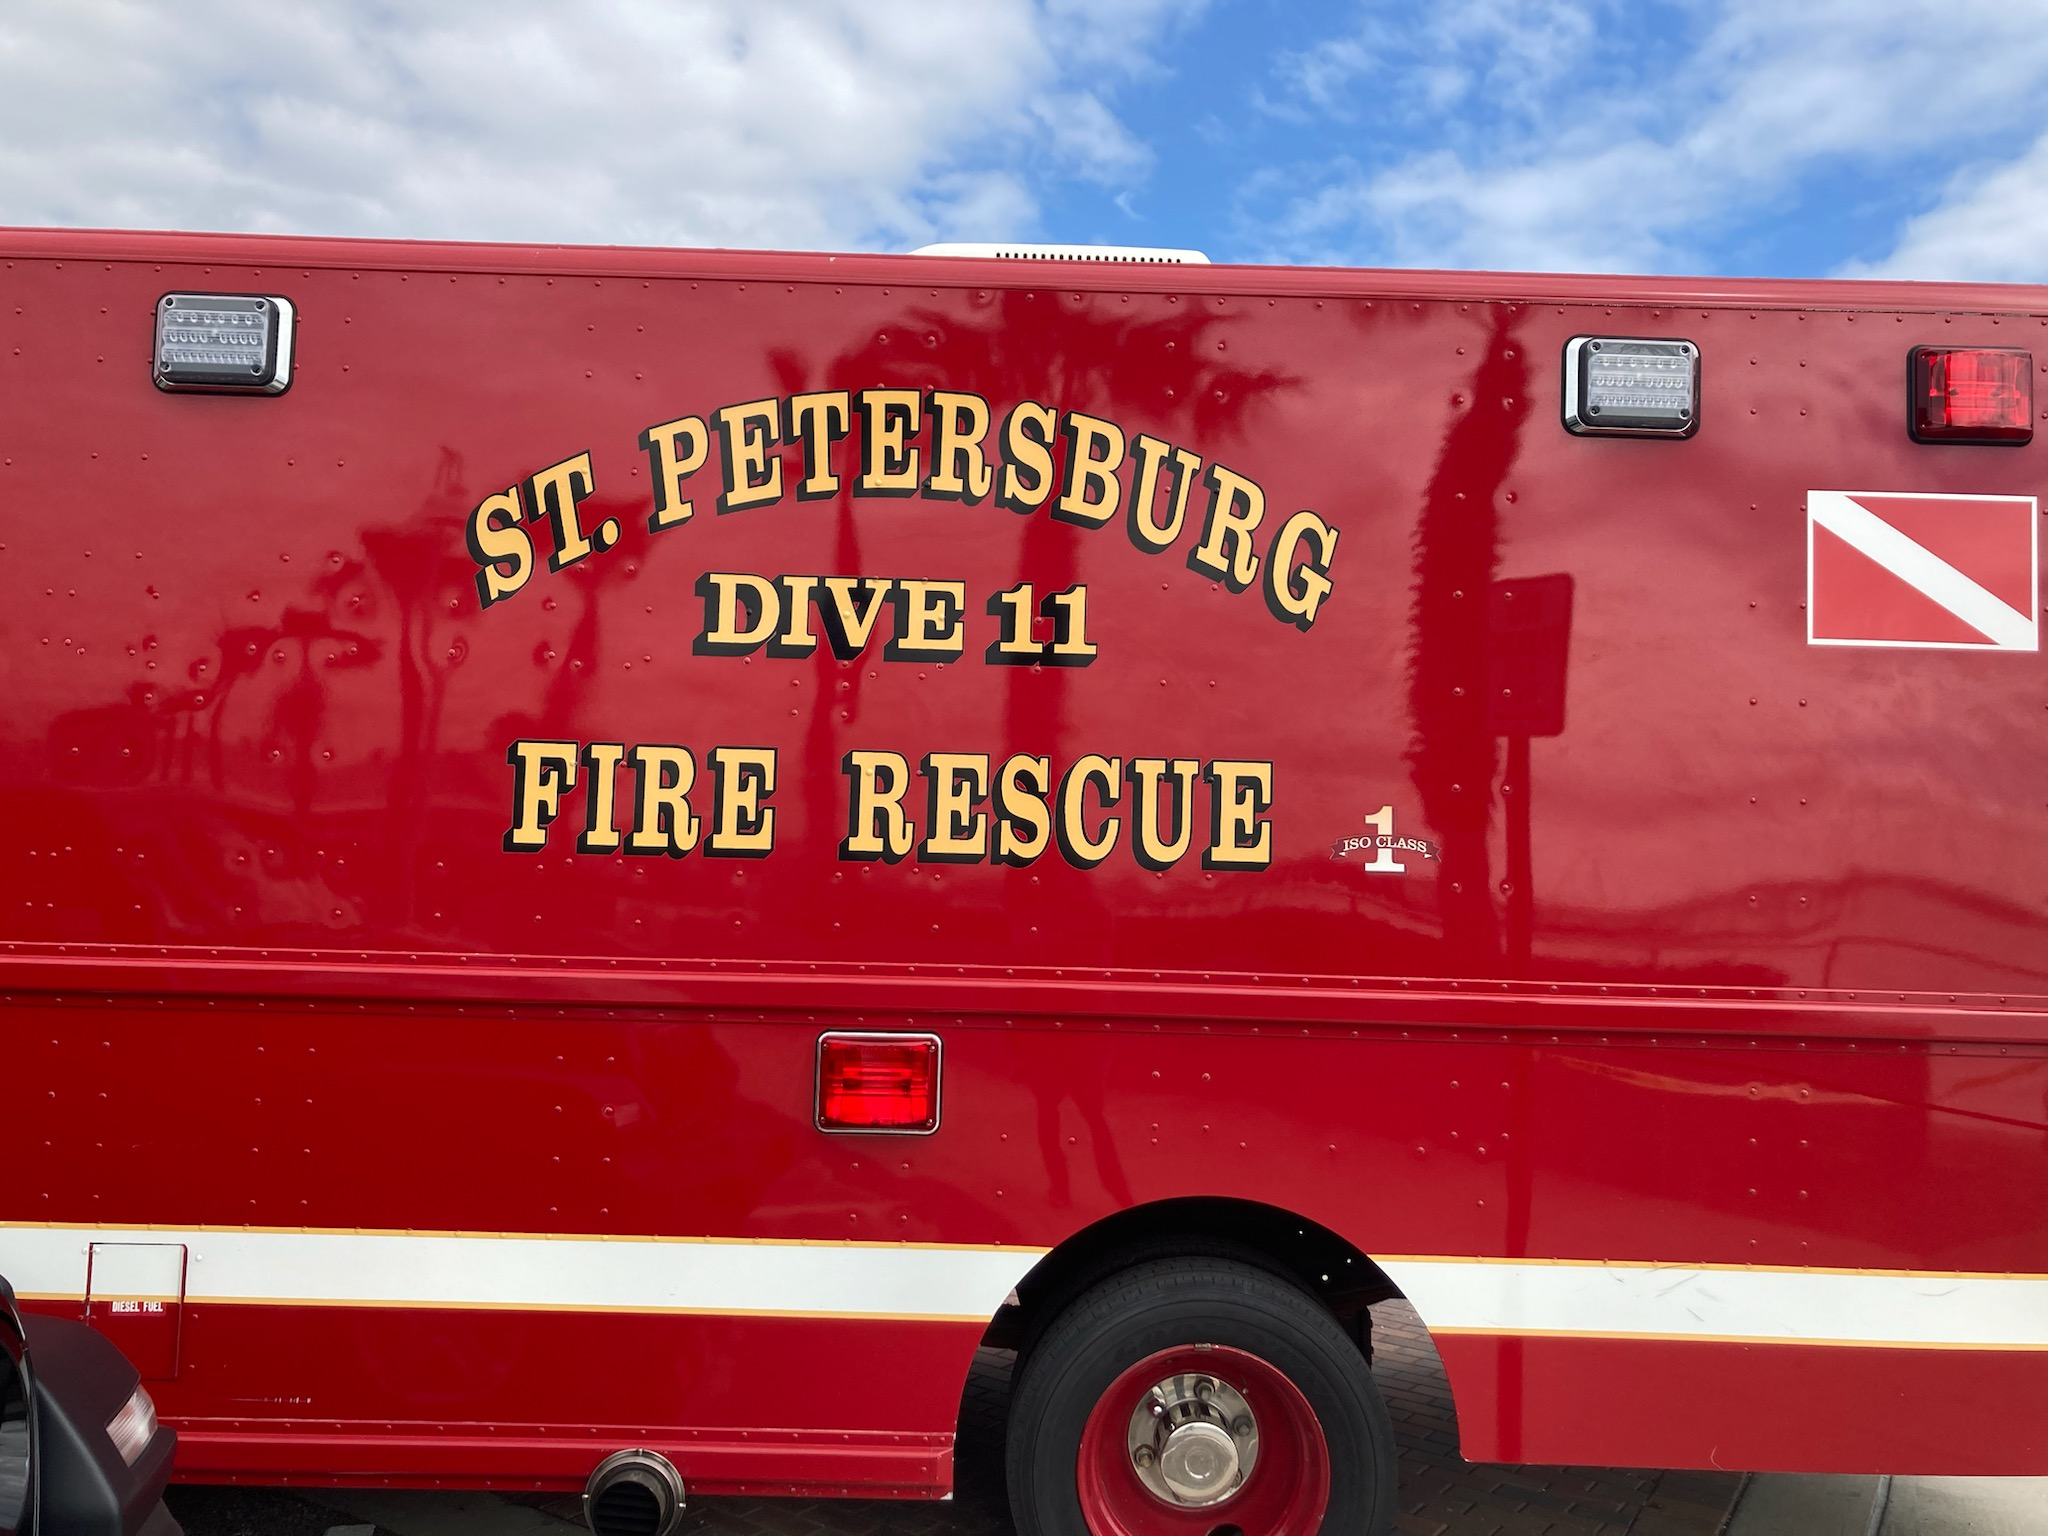 """A close up of a red fire rescue vehicle that reads """"St. Petersburg Dive 11 Fire Rescue"""""""